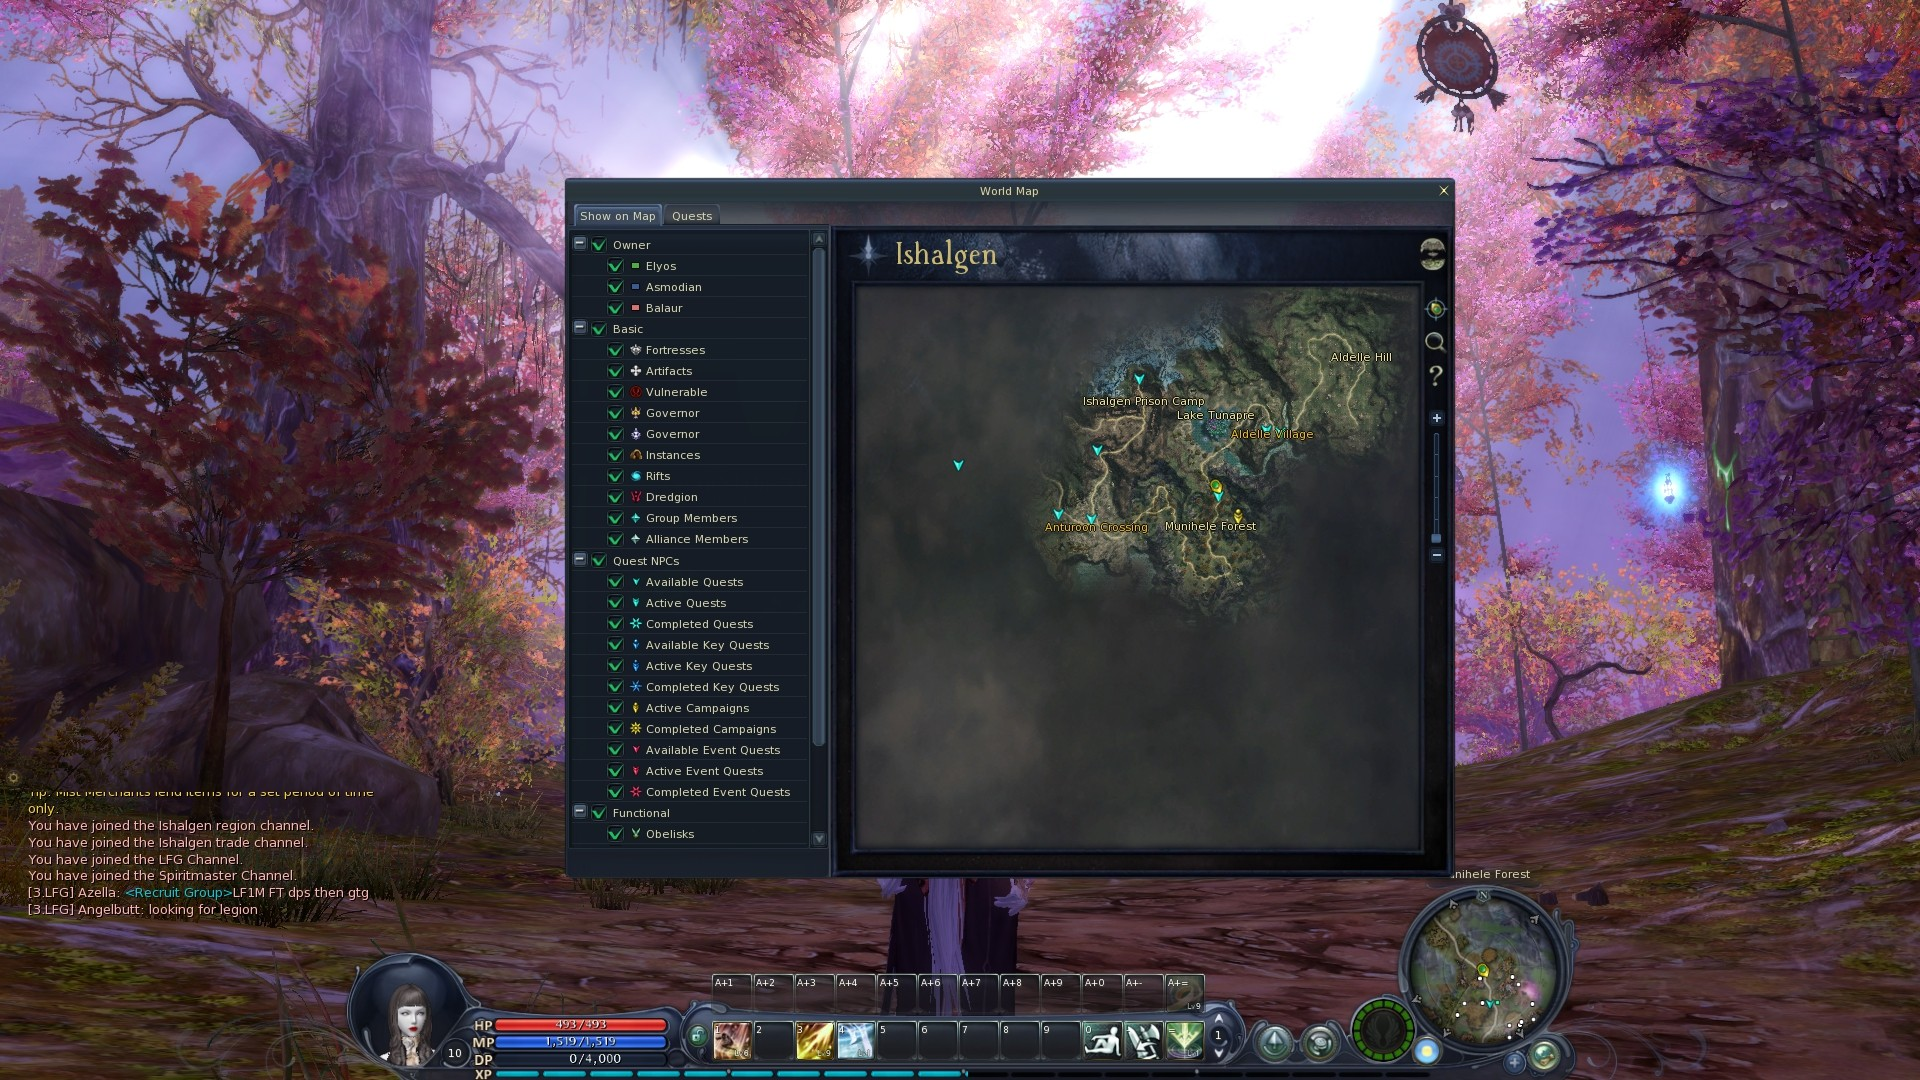 Aion - Newish UI better than original (IMO) and better world map.